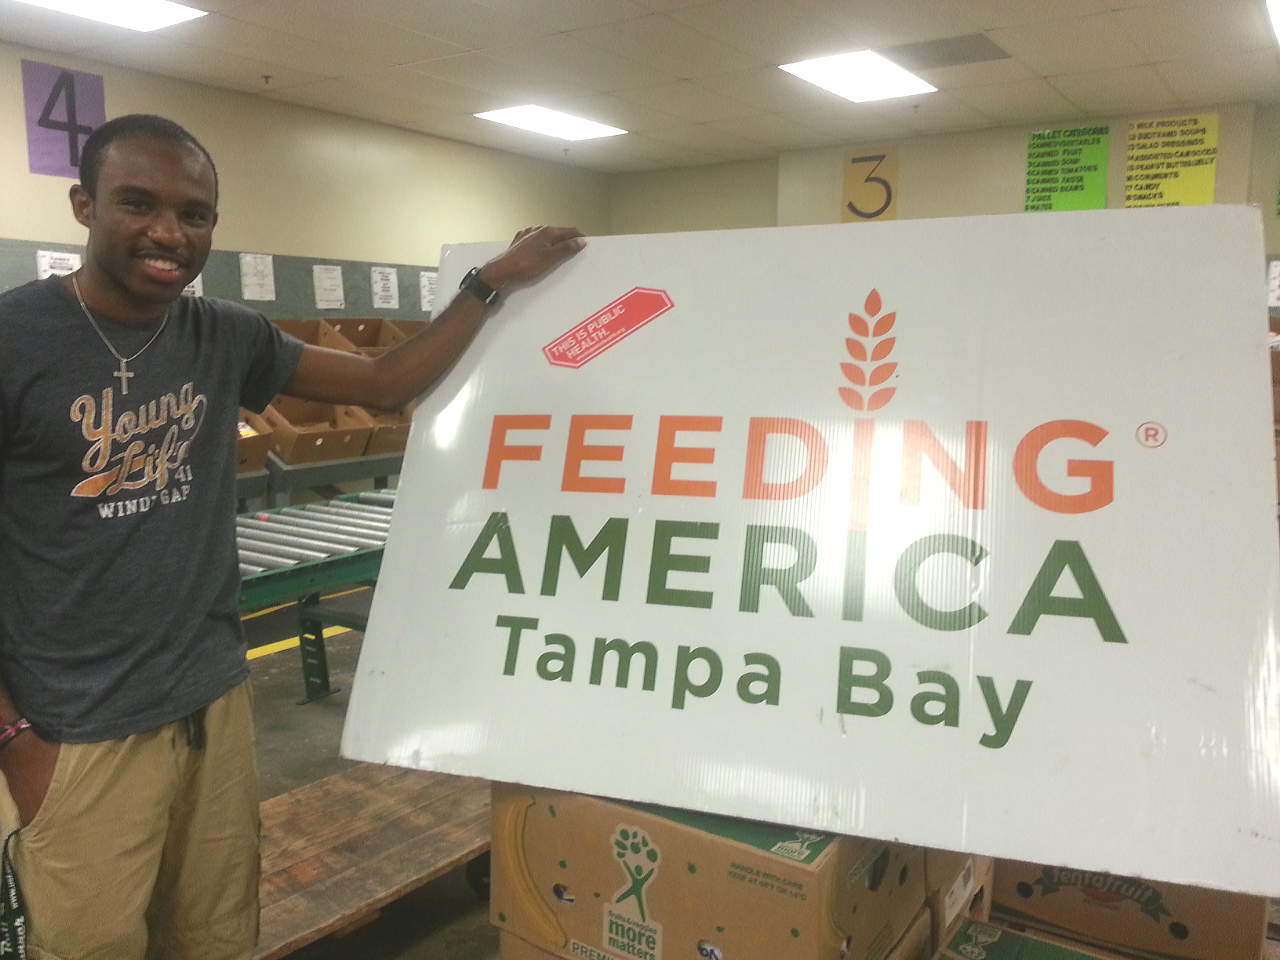 feeding america Learn about working at feeding america join linkedin today for free see who you know at feeding america, leverage your professional network, and get hired.